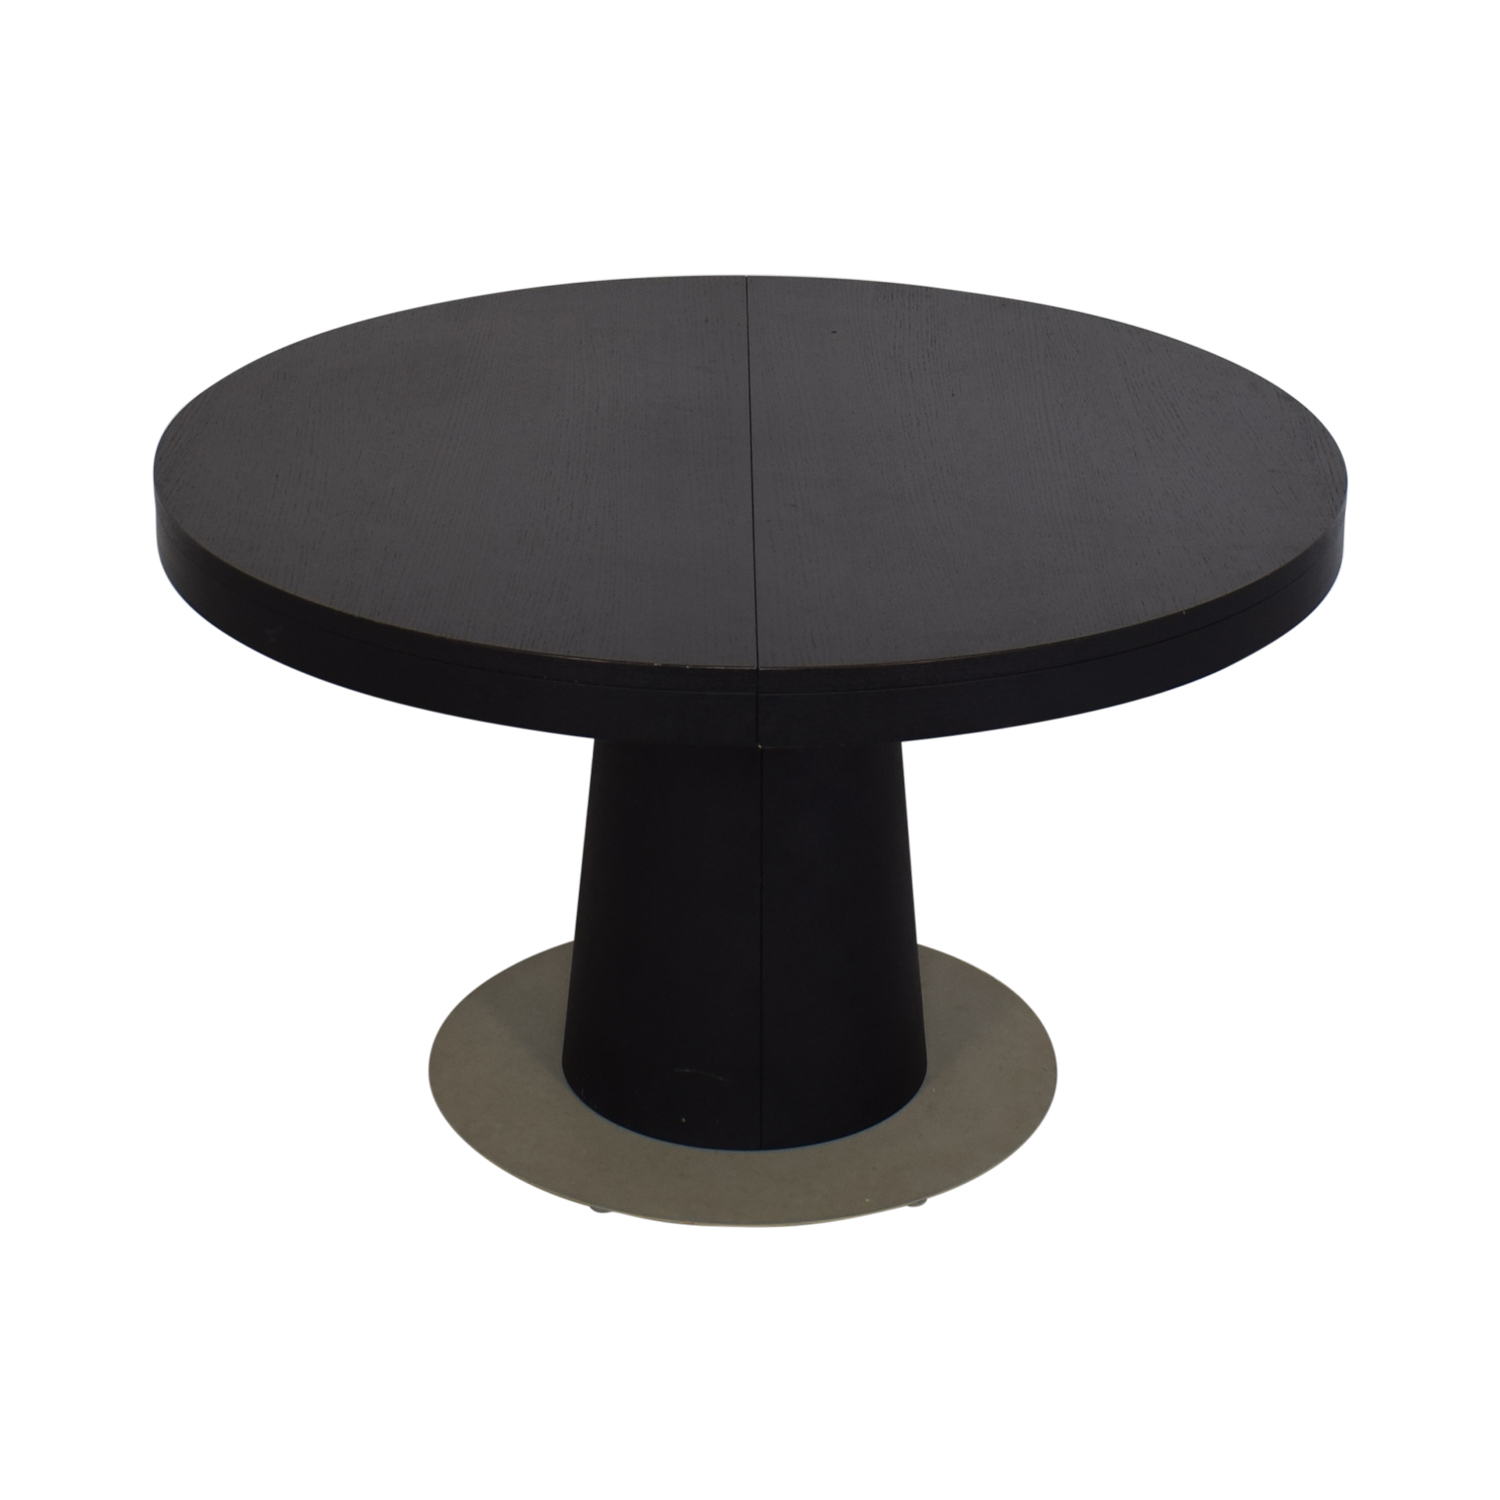 BoConcept BoConcept Granada Extendable Dining Table